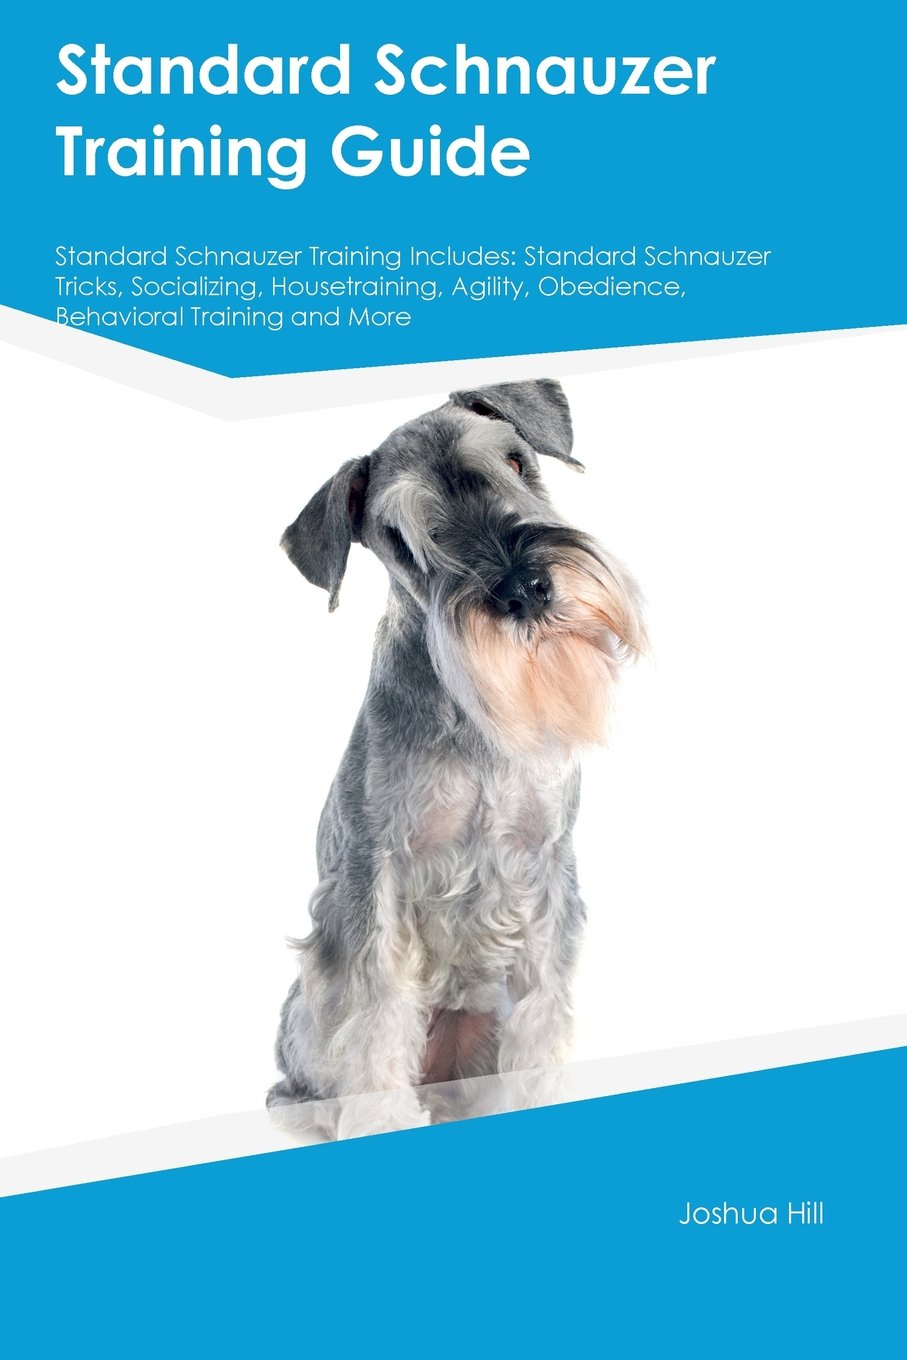 Standard-Schnauzer-Training-Guide-Standard-Schnauzer-Training-Includes-Standard-Schnauzer-Tricks-Socializing-Housetraining-Agility-Obedience-Behavioral-Training-and-More